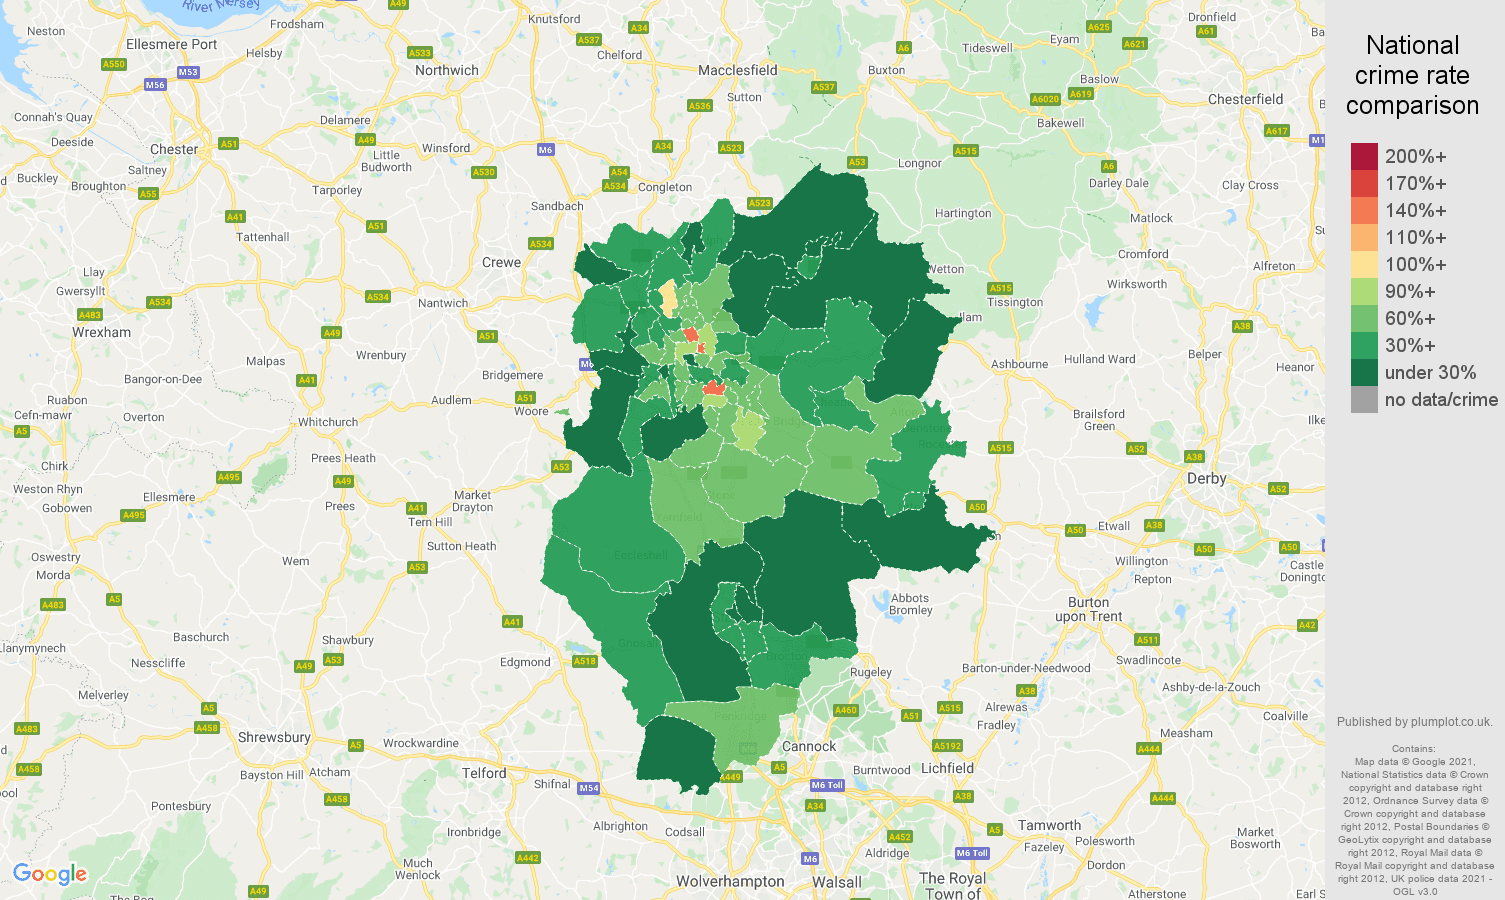 Stoke on Trent vehicle crime rate comparison map